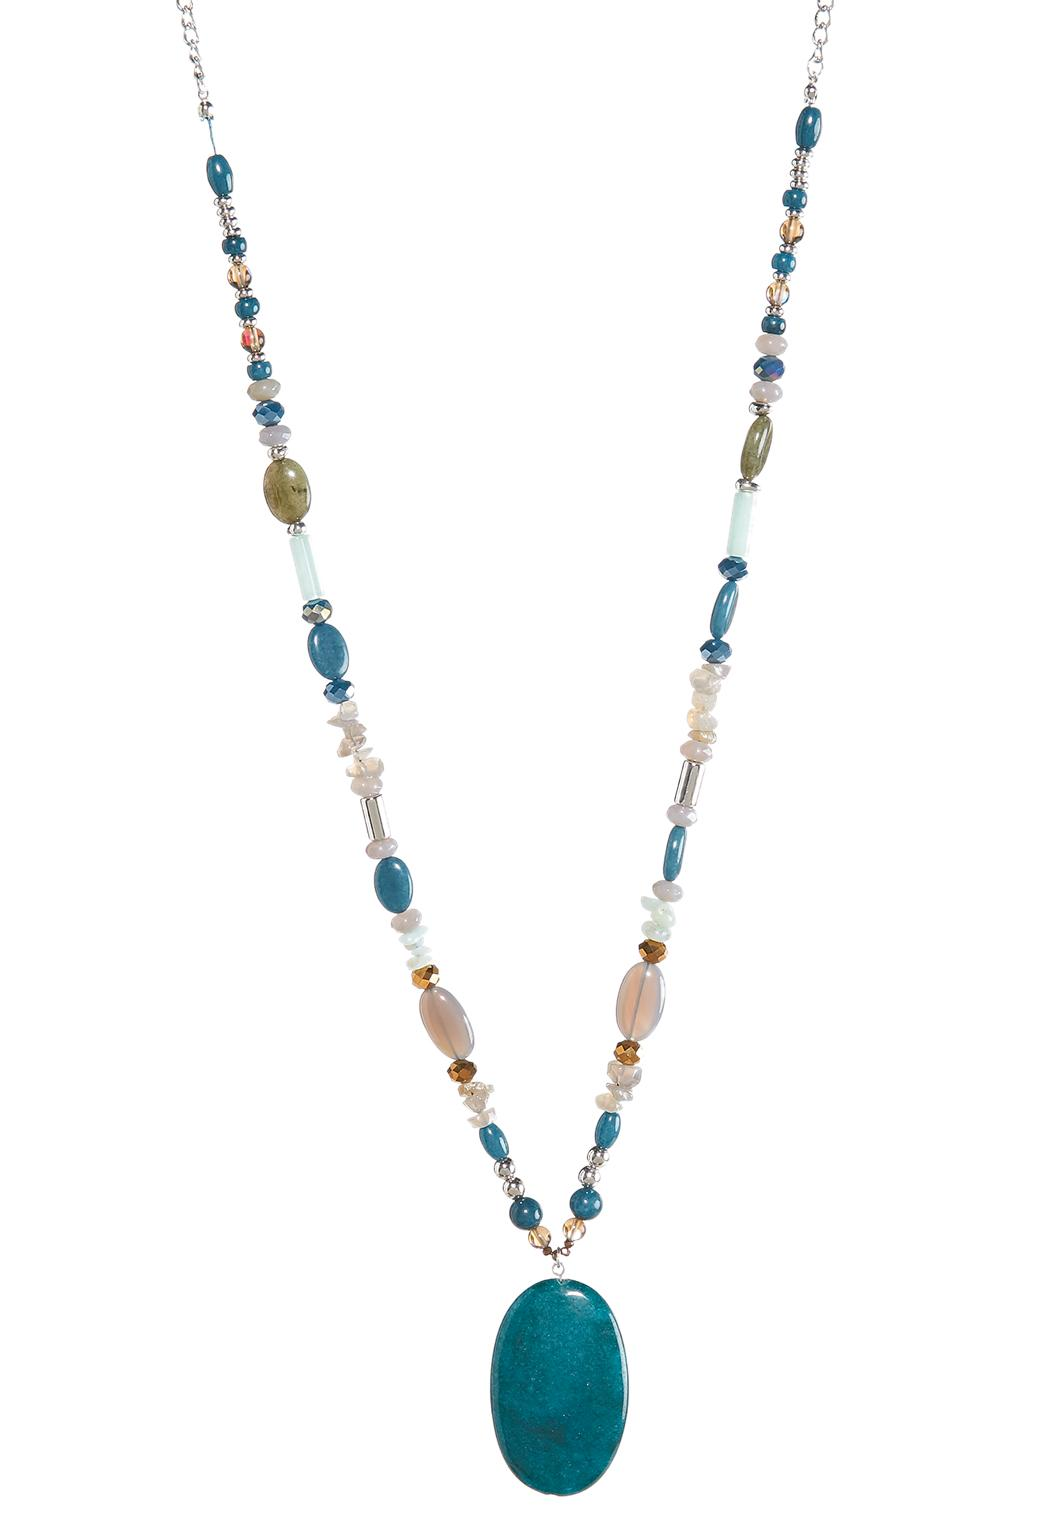 Bead and stone pendant necklace long cato fashions bead and stone pendant necklace mozeypictures Image collections